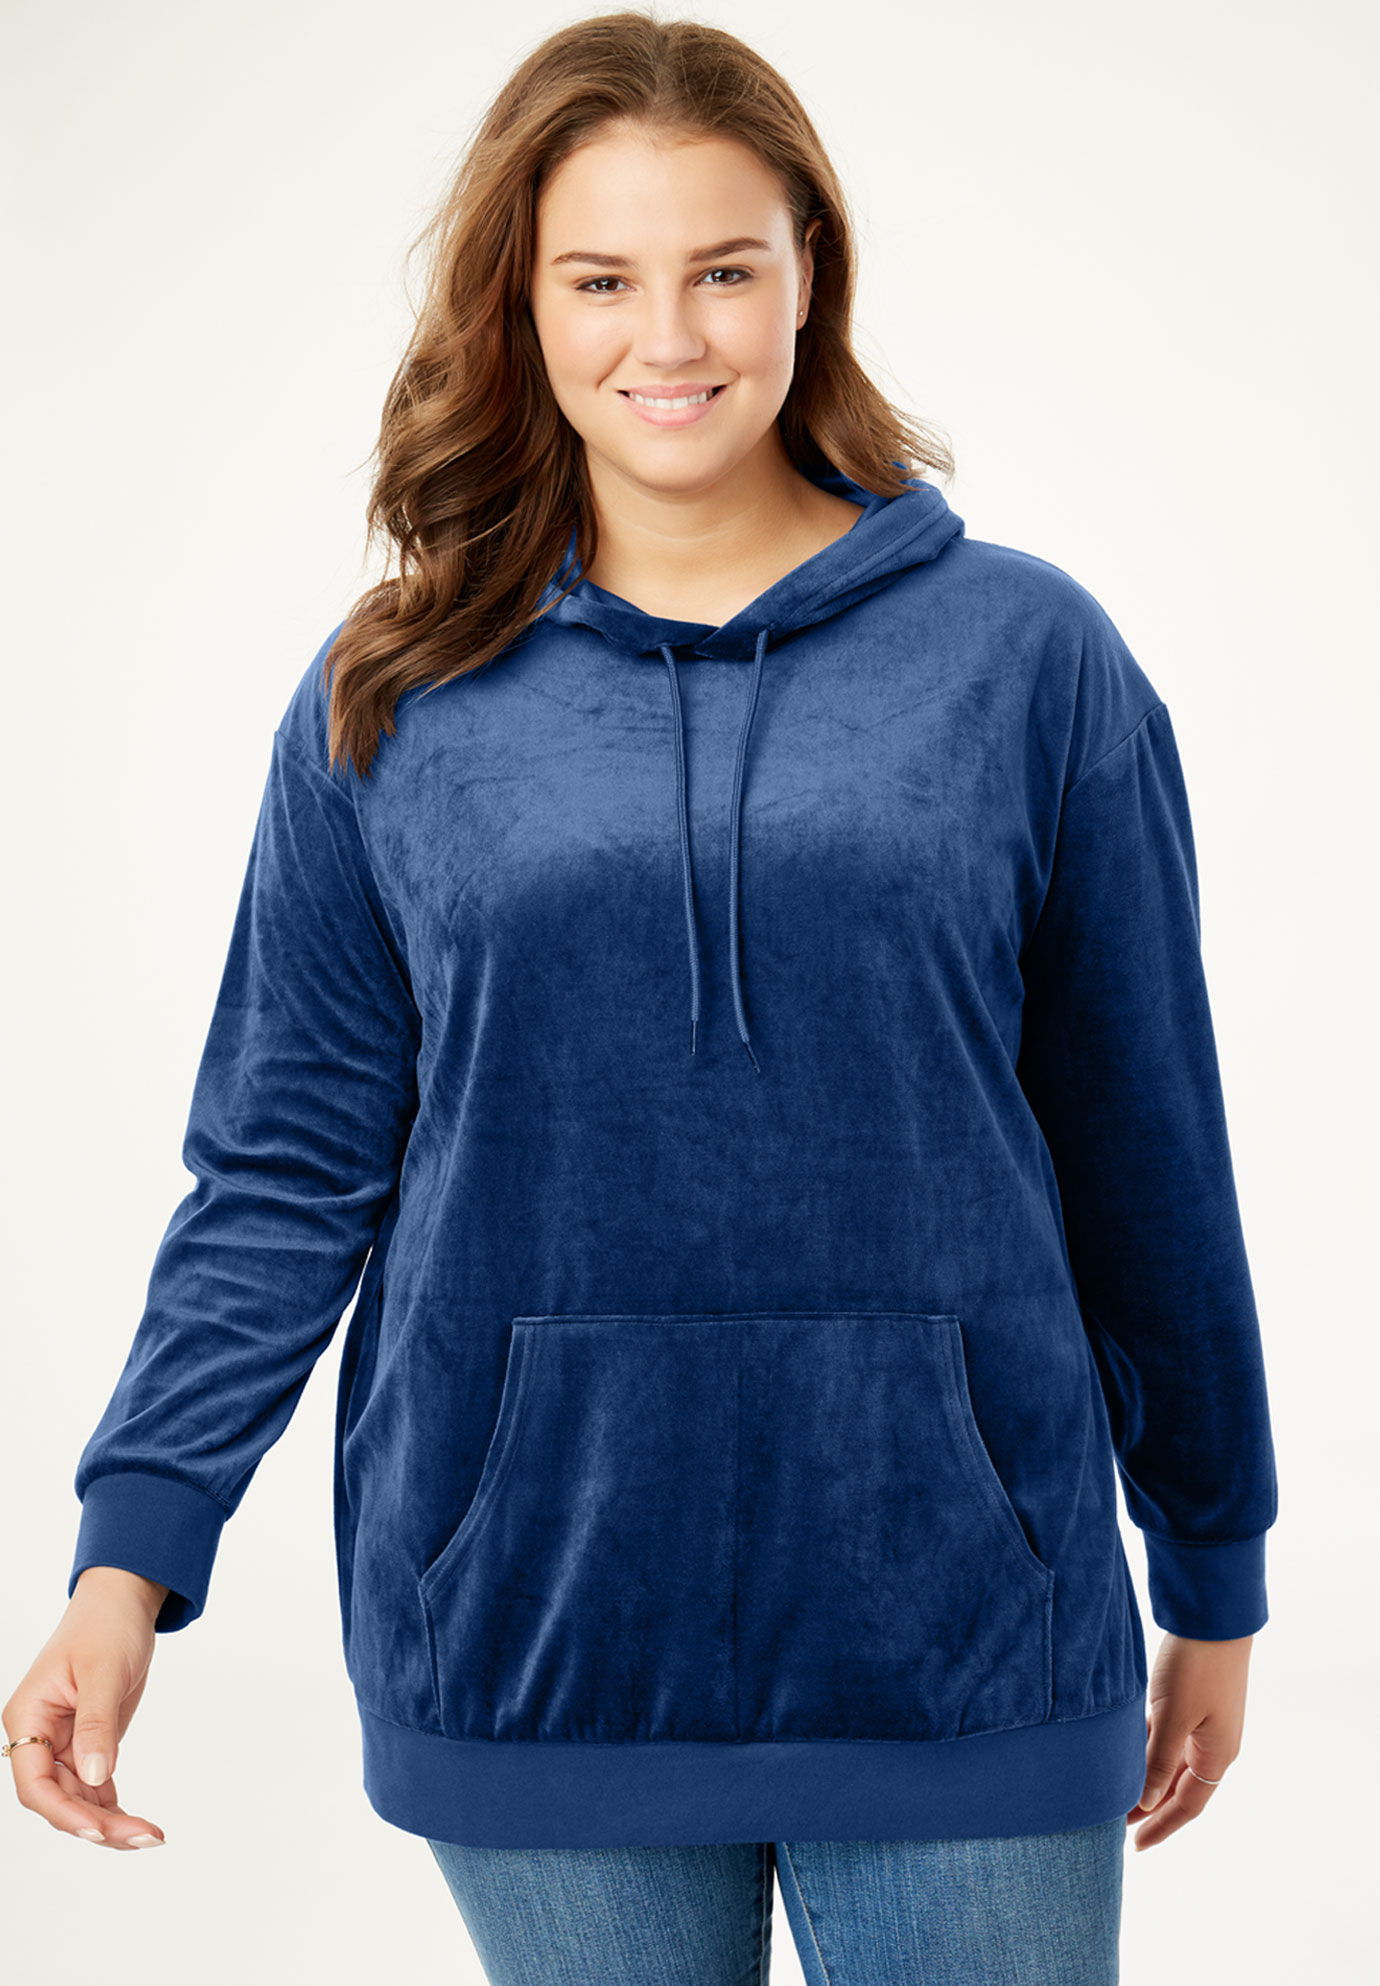 Velour Hooded Sweatshirt,